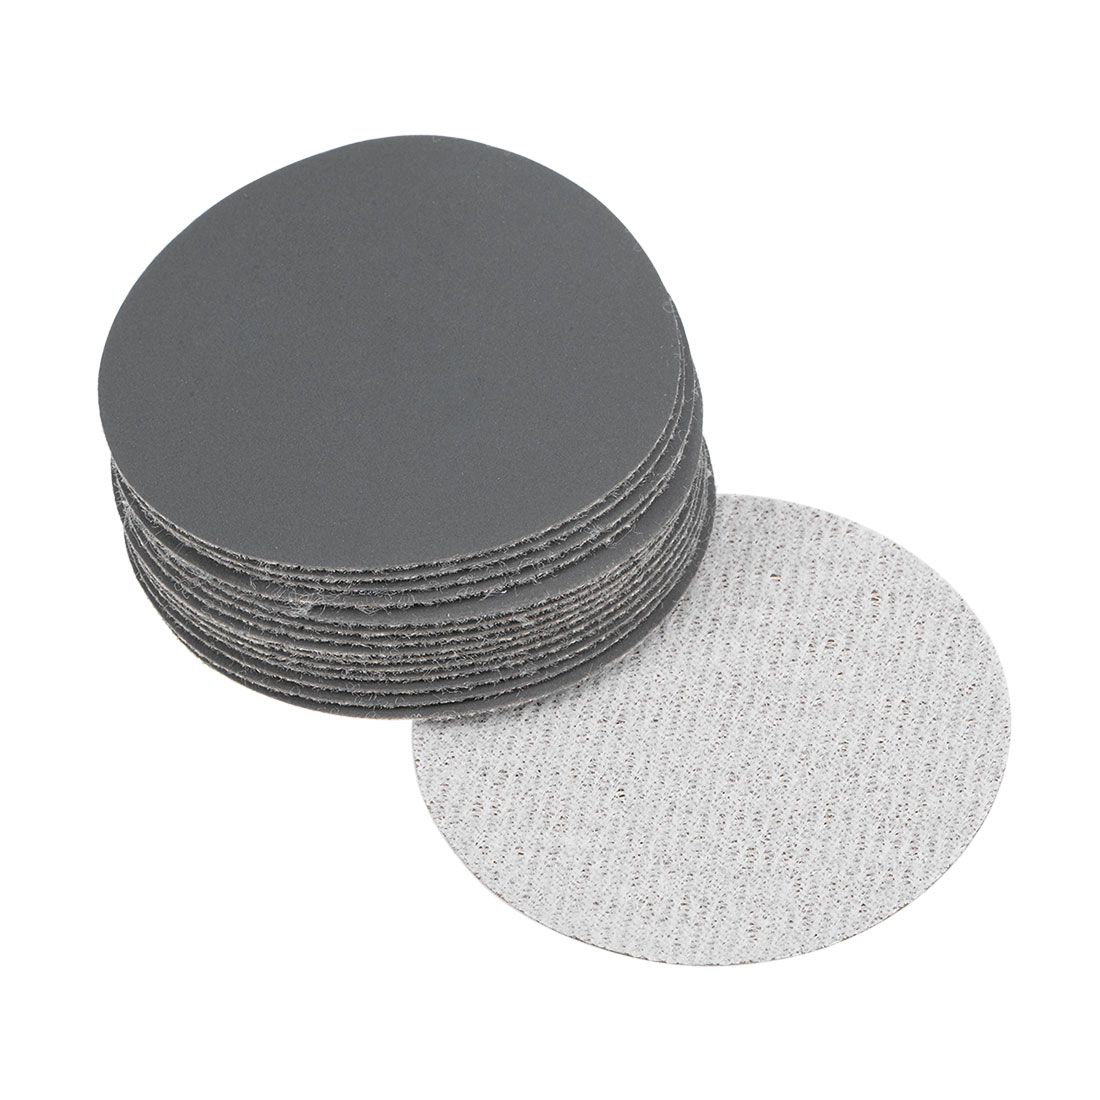 2 inch Wet Dry Discs 1500 Grit Hook and Loop Sanding Disc Silicon Carbide 15pcs